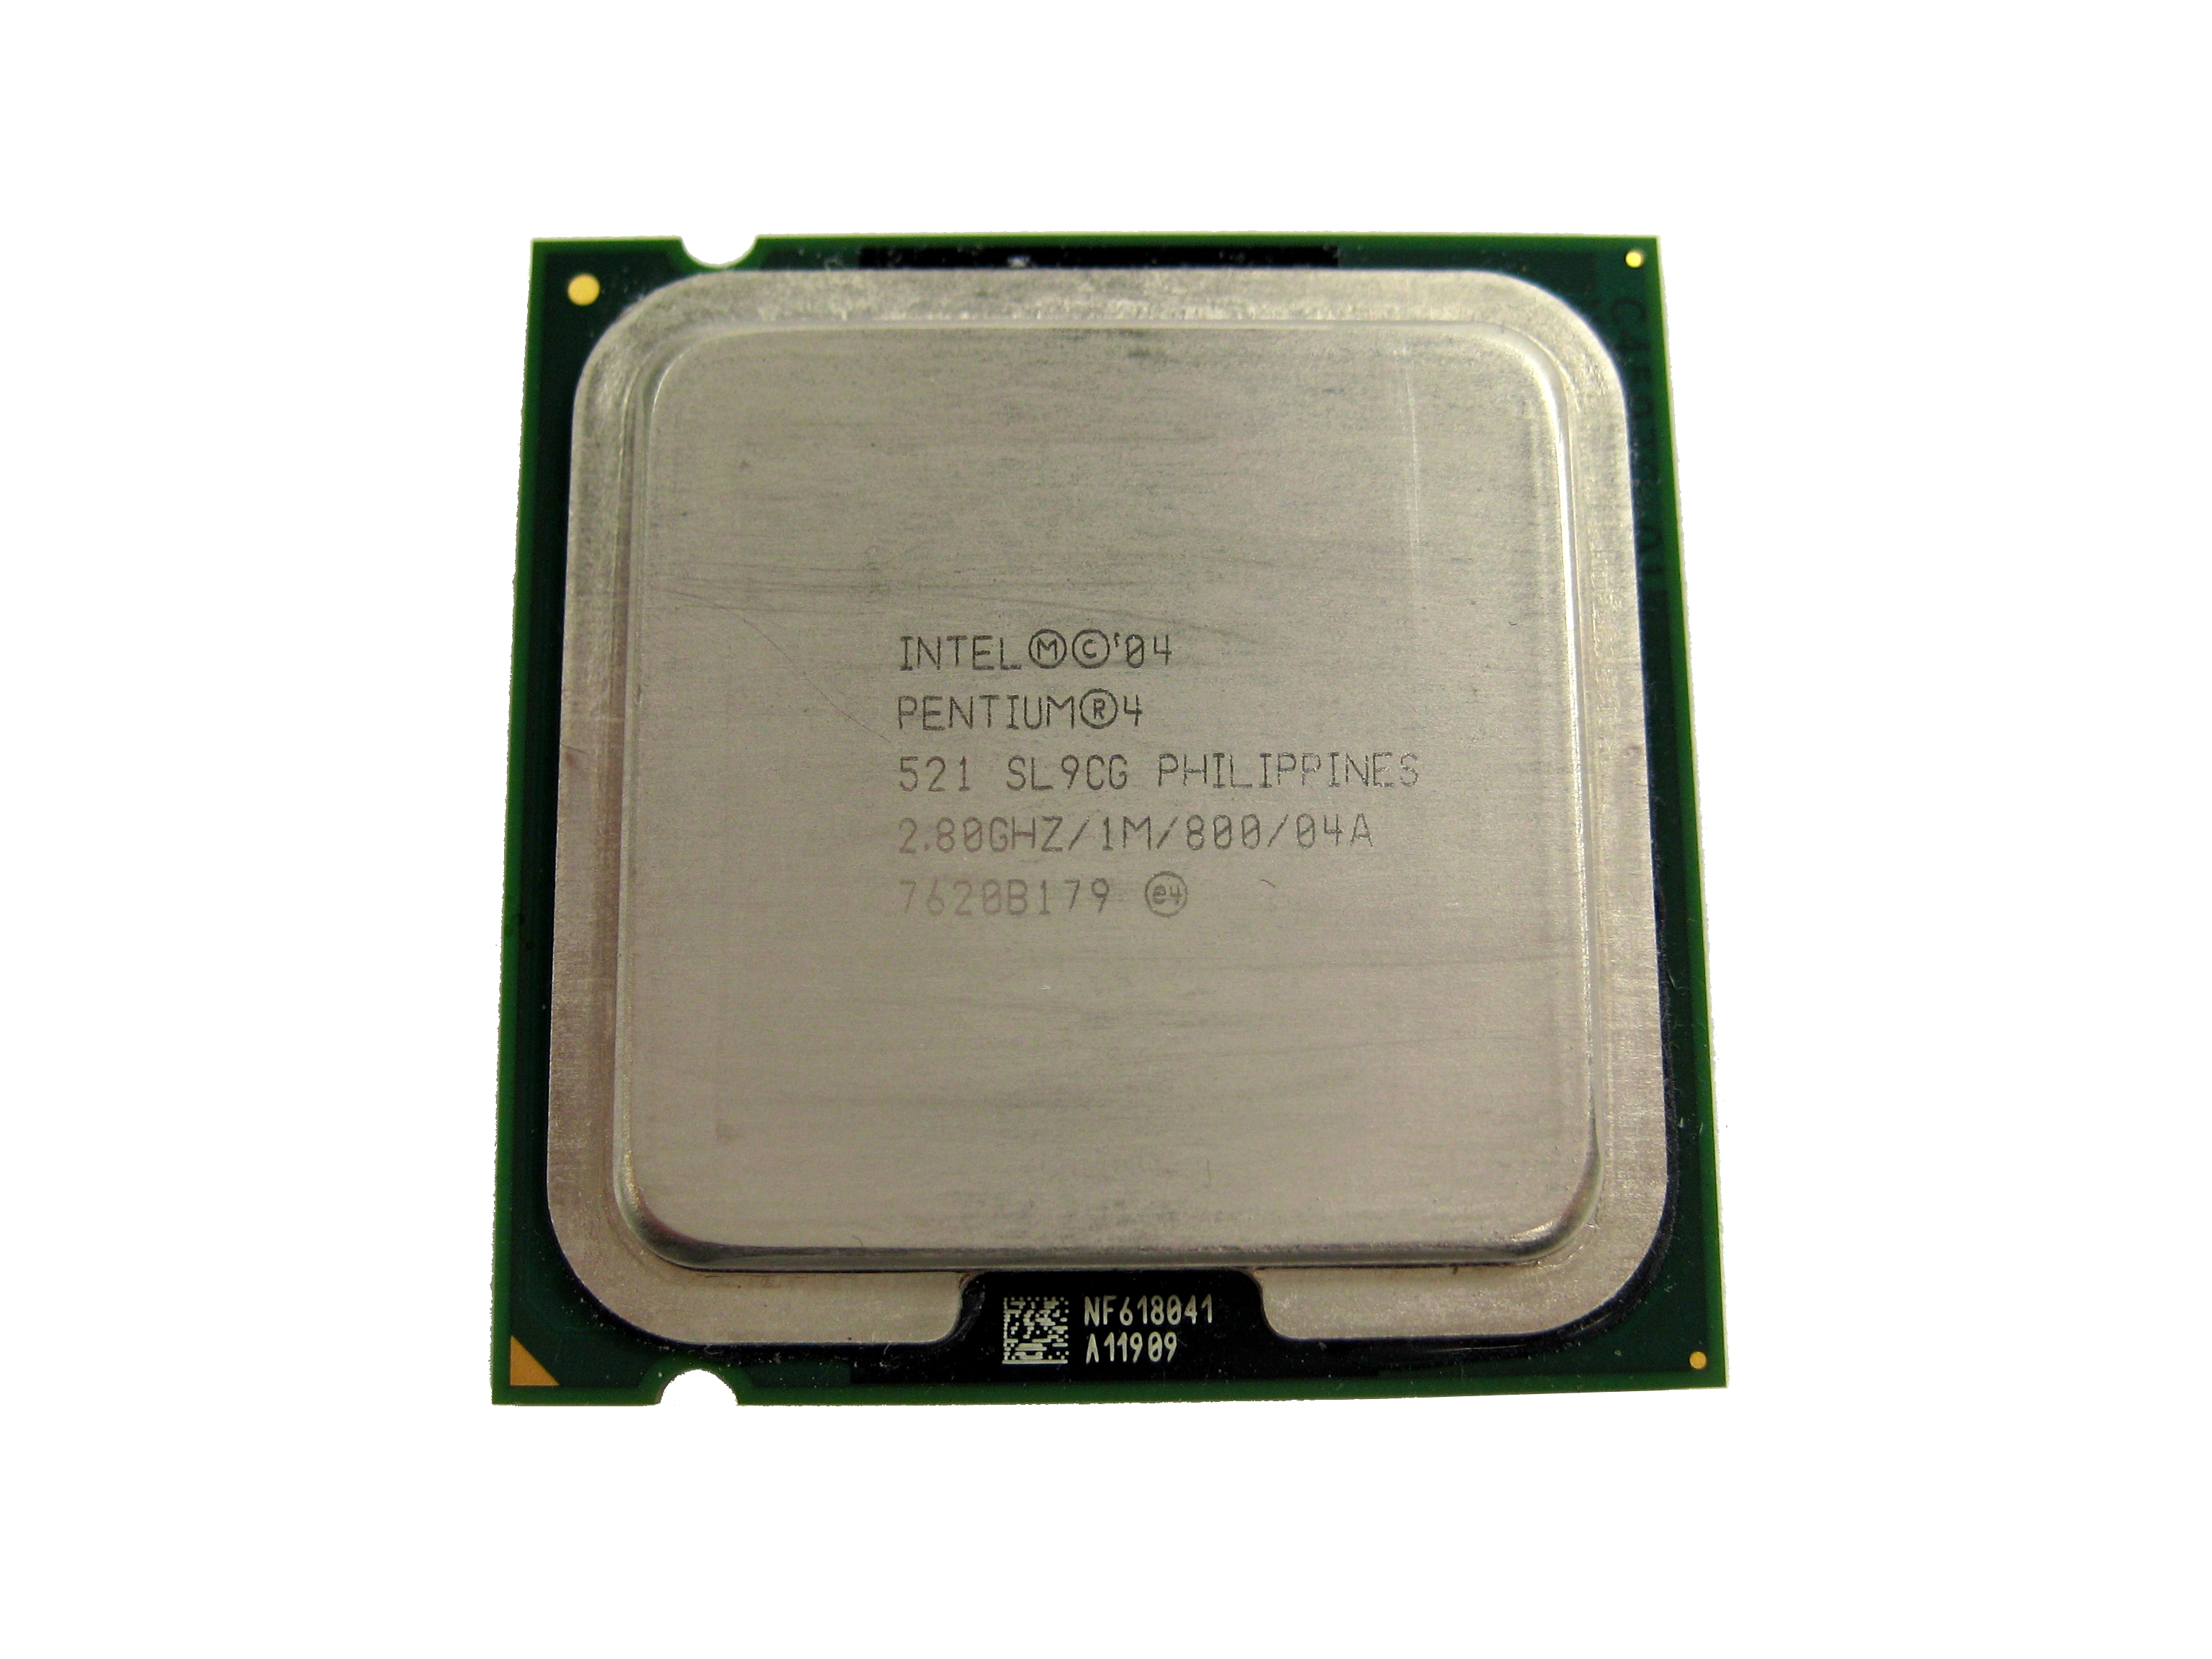 Intel SL9CG Pentium 4 521 2.8GHz 800MHz 1MB Socket 775 Processor